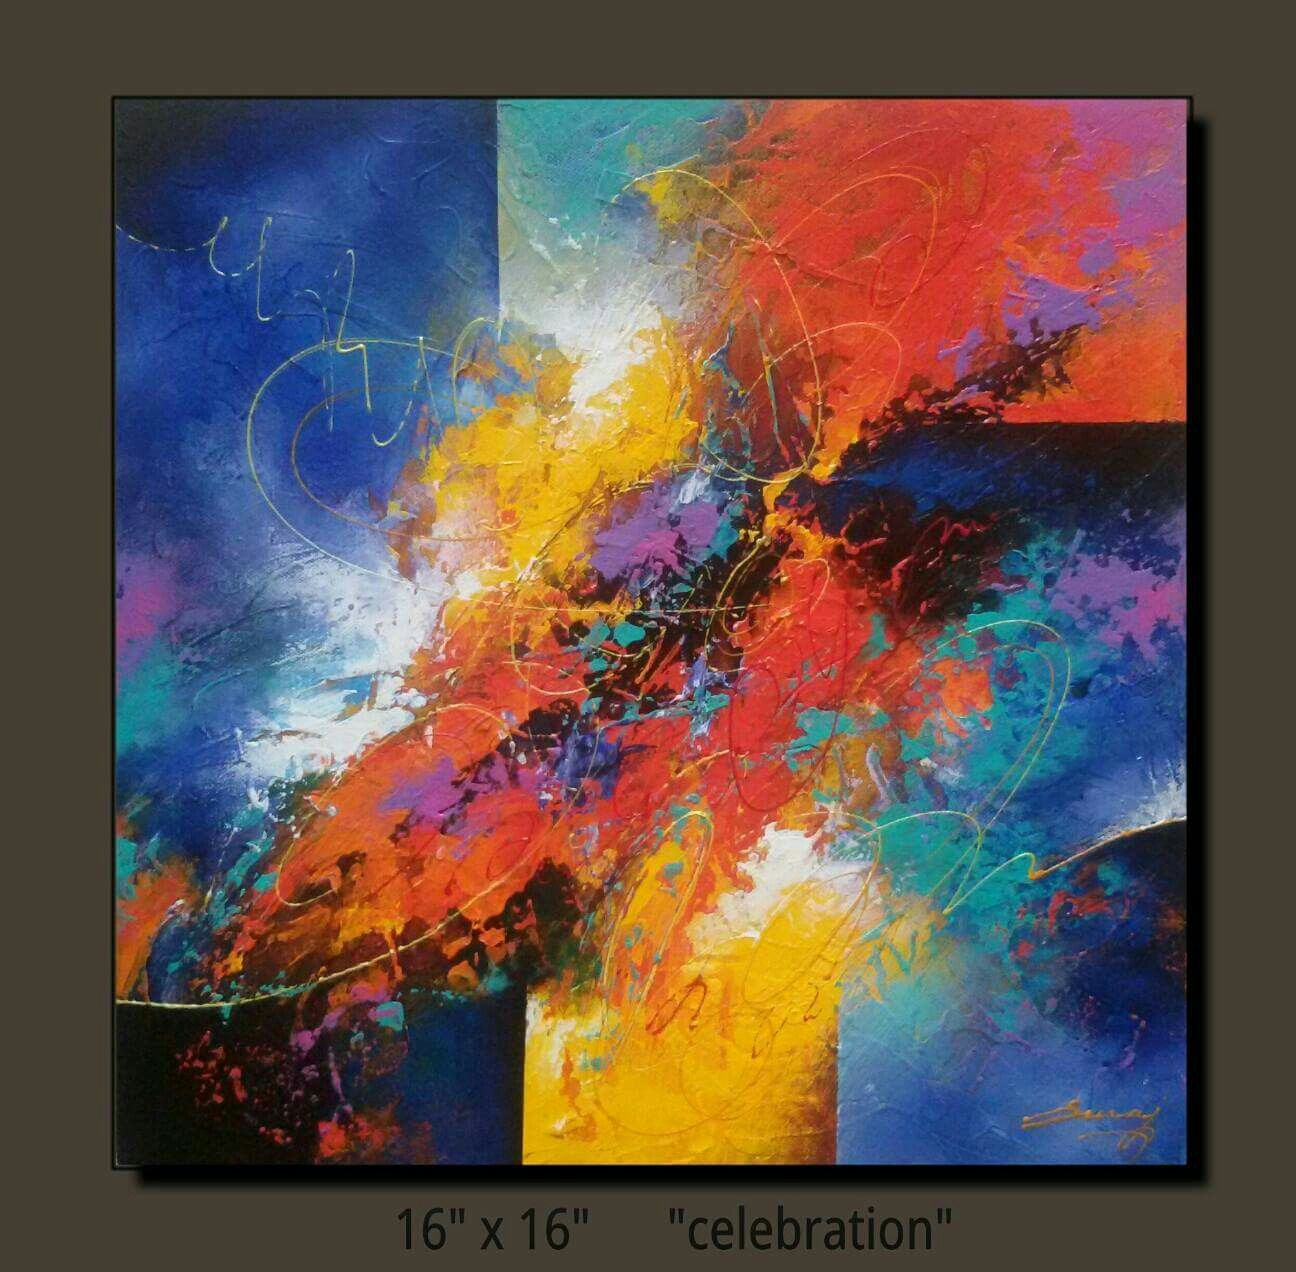 Pin by marianne lehman on suraj fine arts pinterest for Abstract watercolor painting tutorial